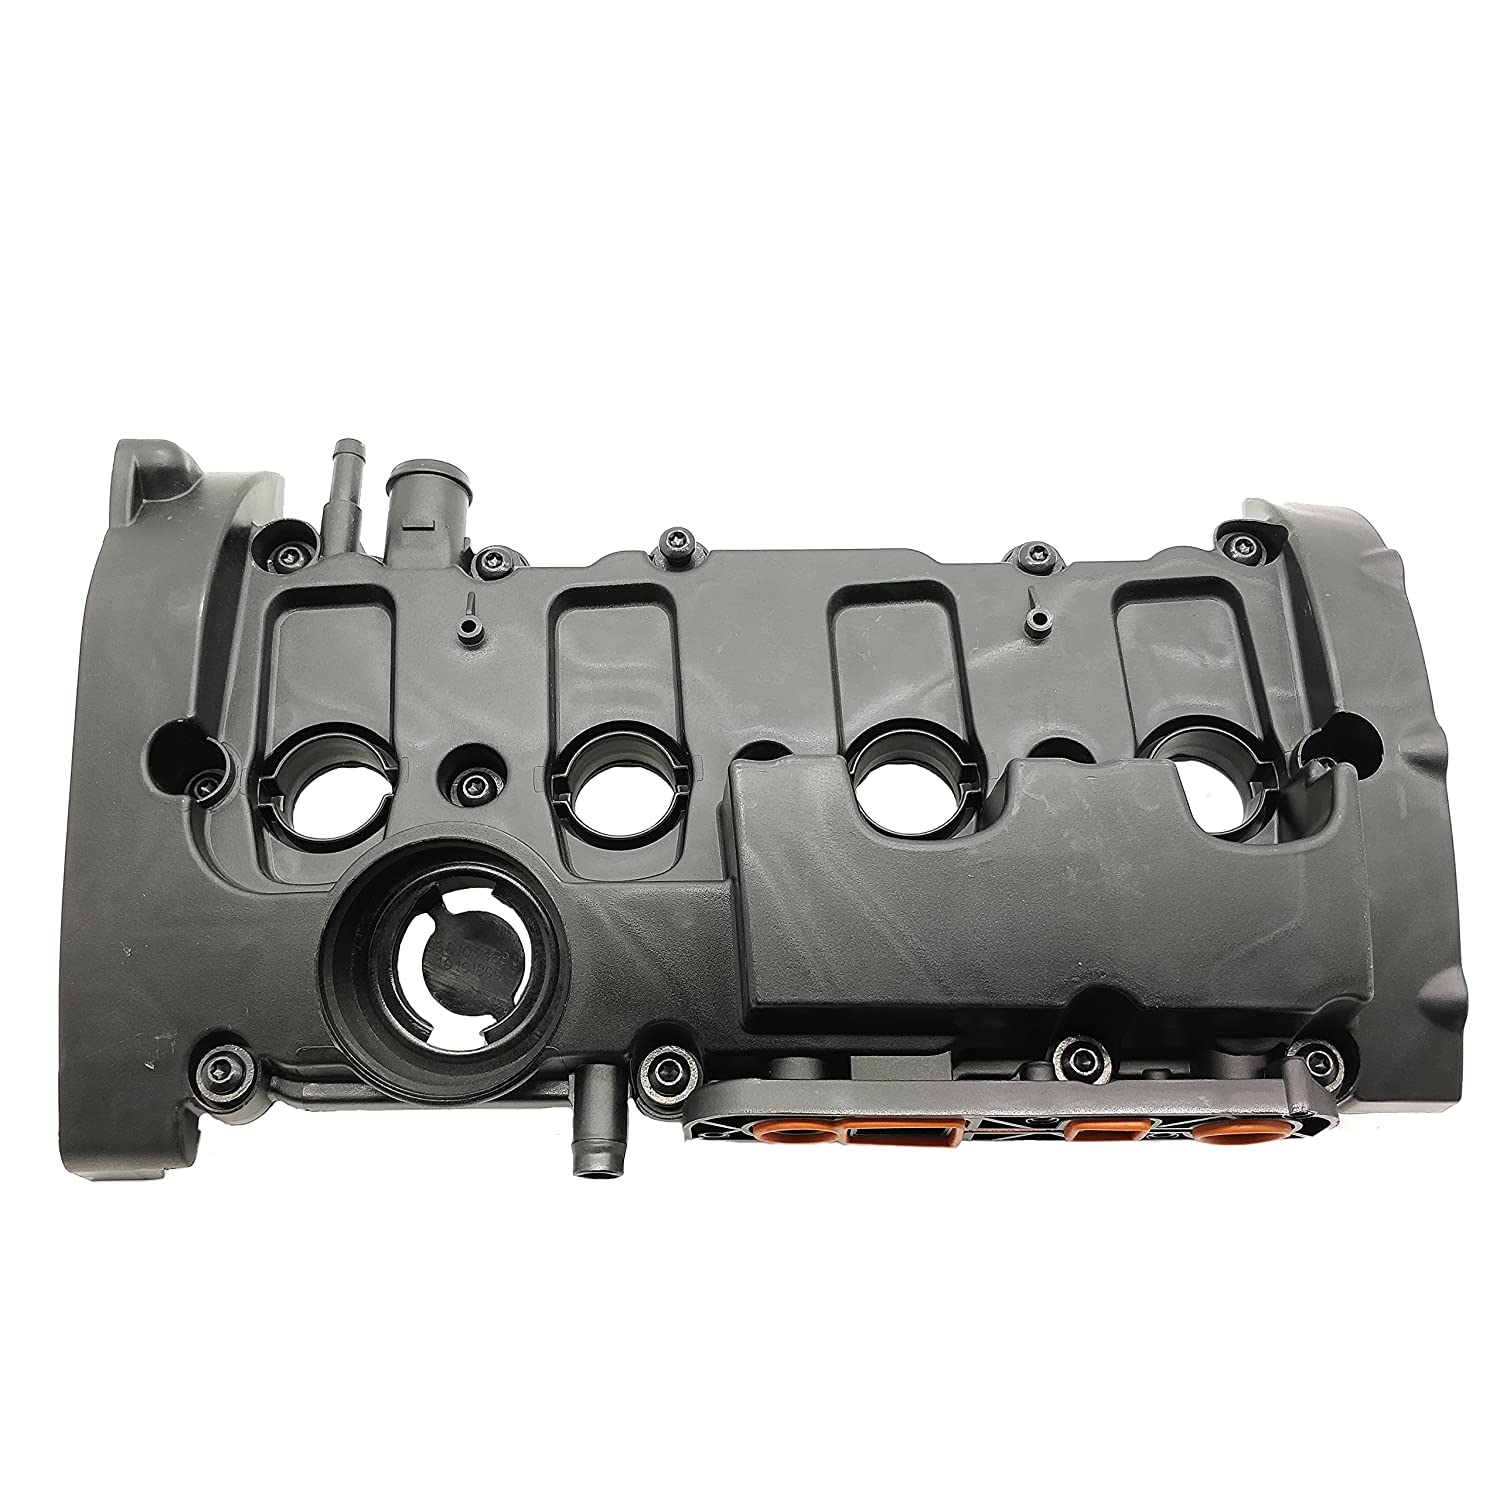 Engine Valve Cover Fit For Audi A4 2009 Cabriolet 2.0L L4 06D-103-469-N